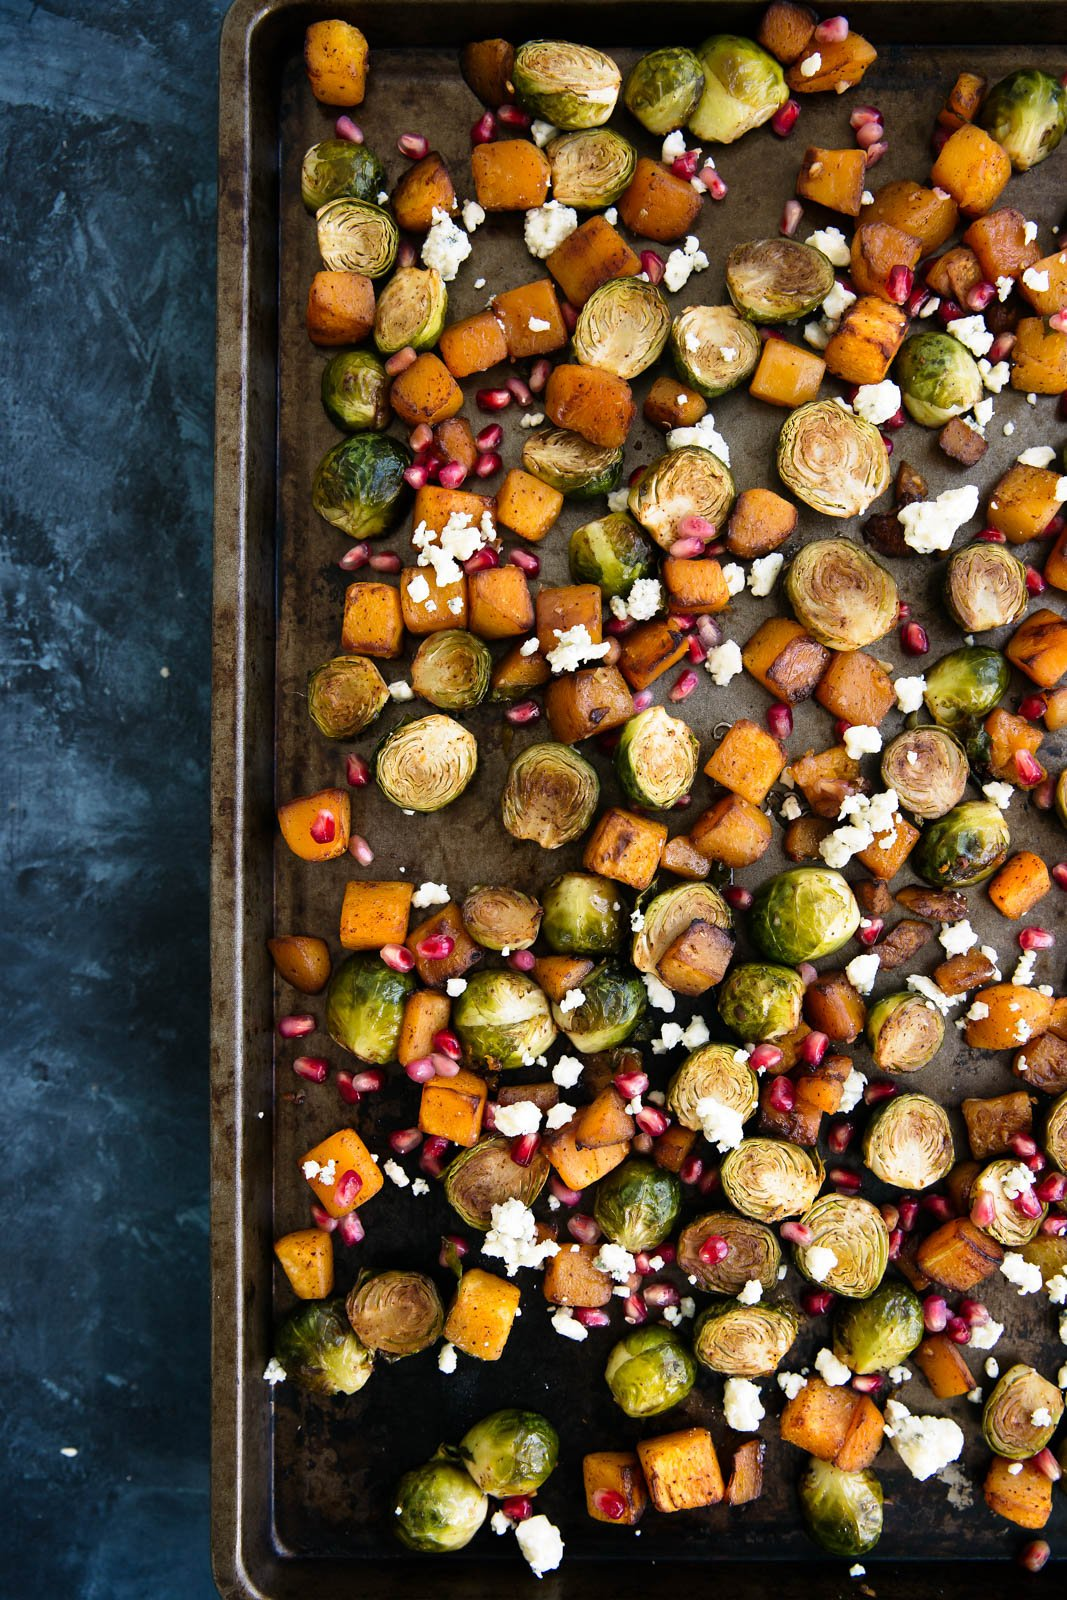 Delicious brussels sprouts and butternut squash tossed irresistible chili-maple sauce then roasted to perfection. Topped with sweet pomegranate seeds, zesty gorgonzola and crunchy pecans or walnuts if you'd like.